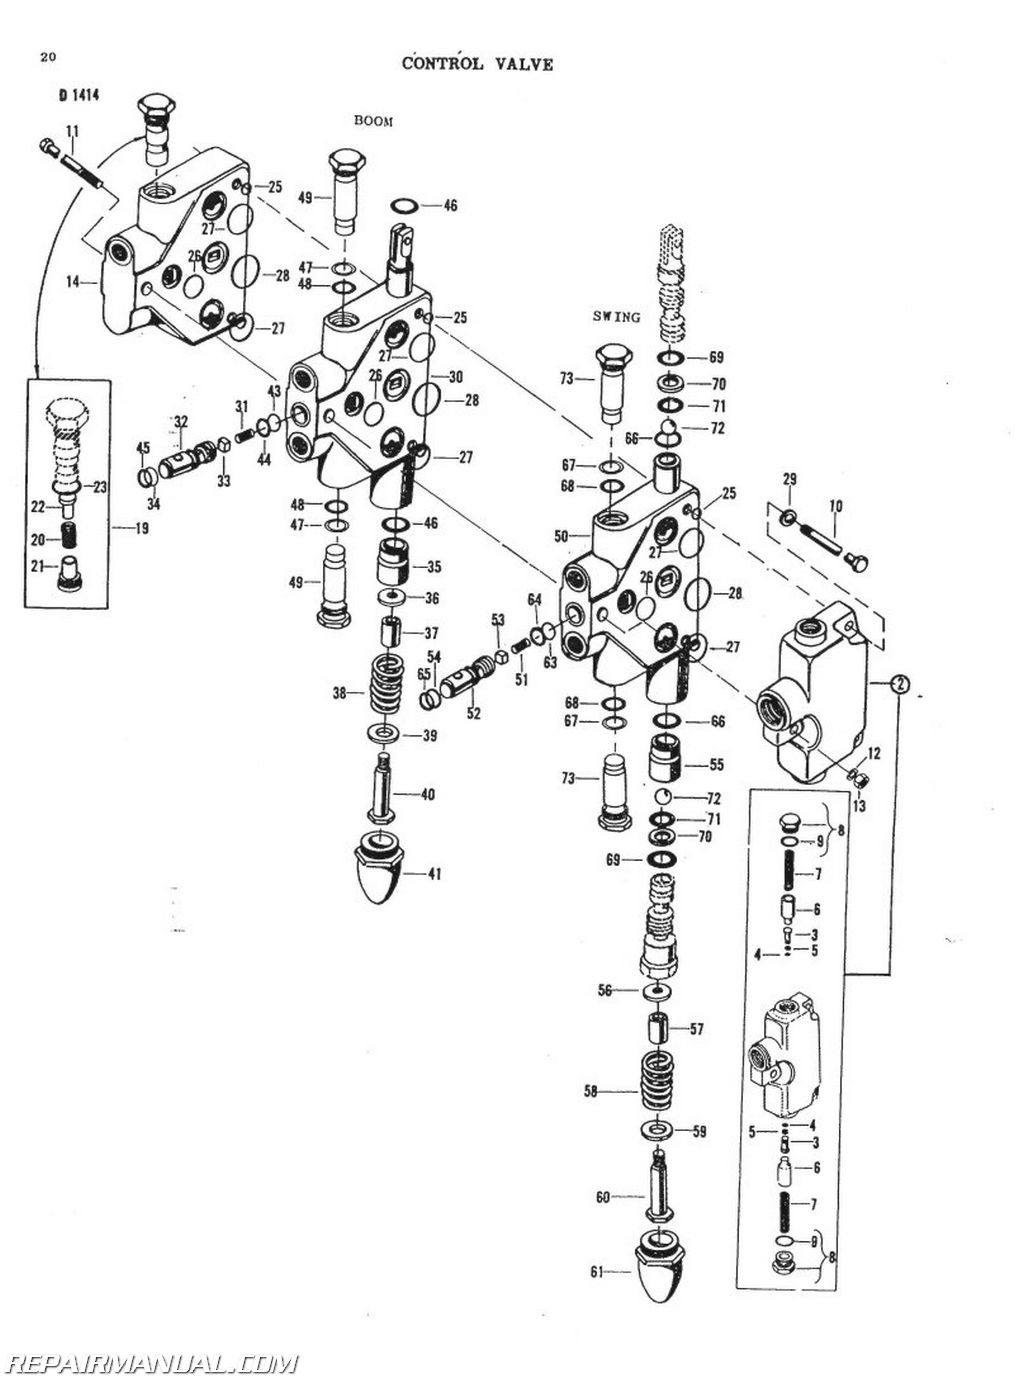 backhoe schematic